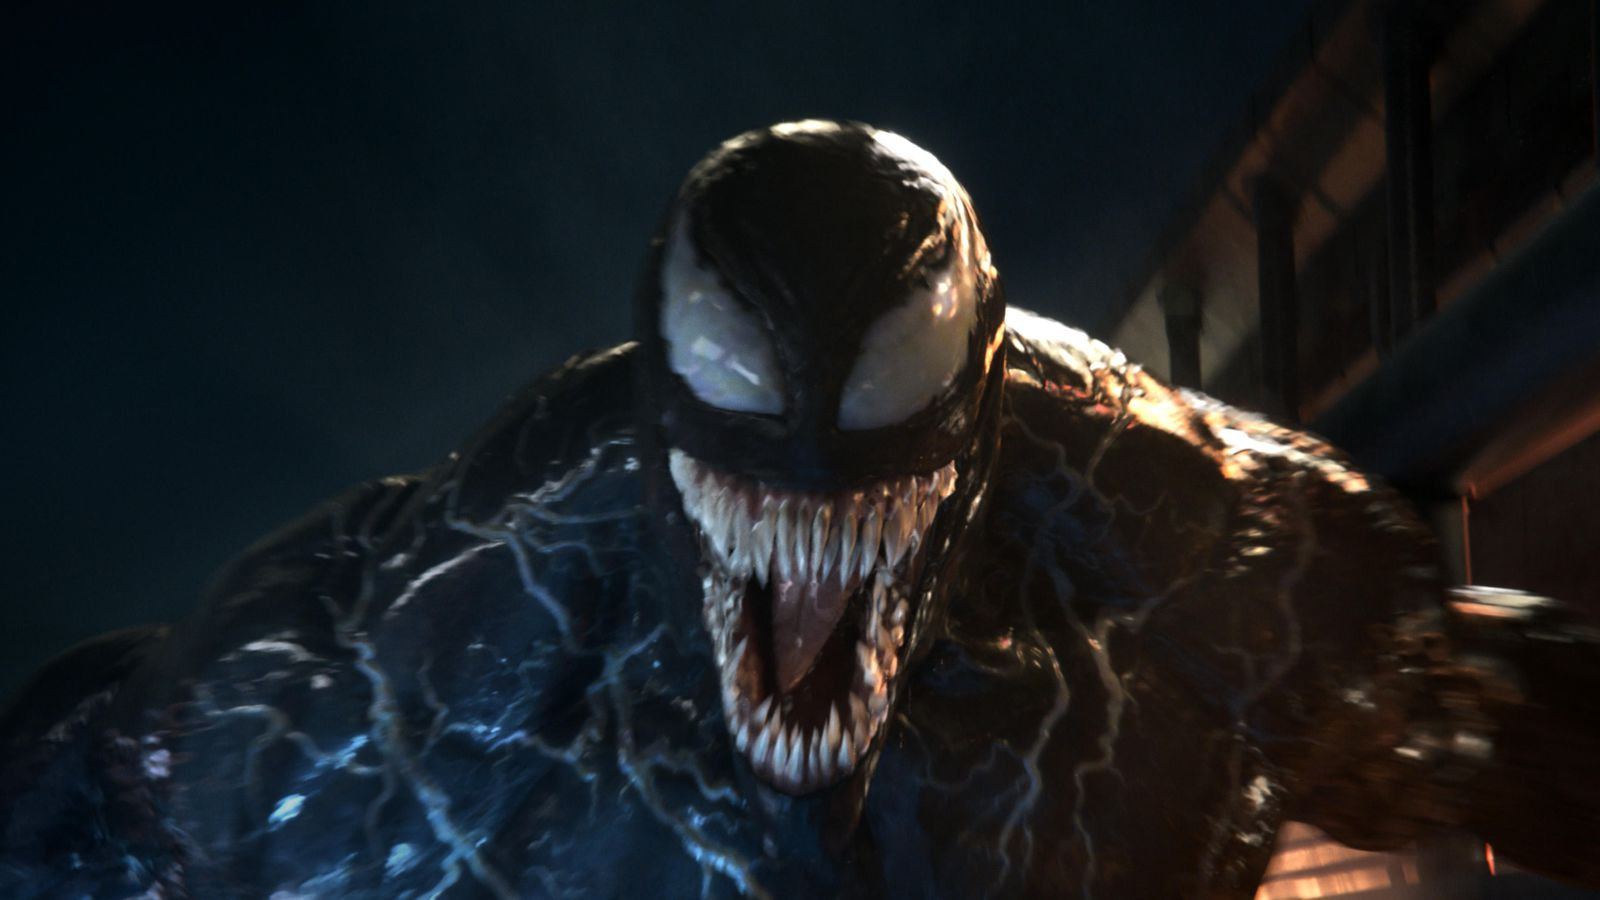 Venom 2 will be directed by Andy Serkis